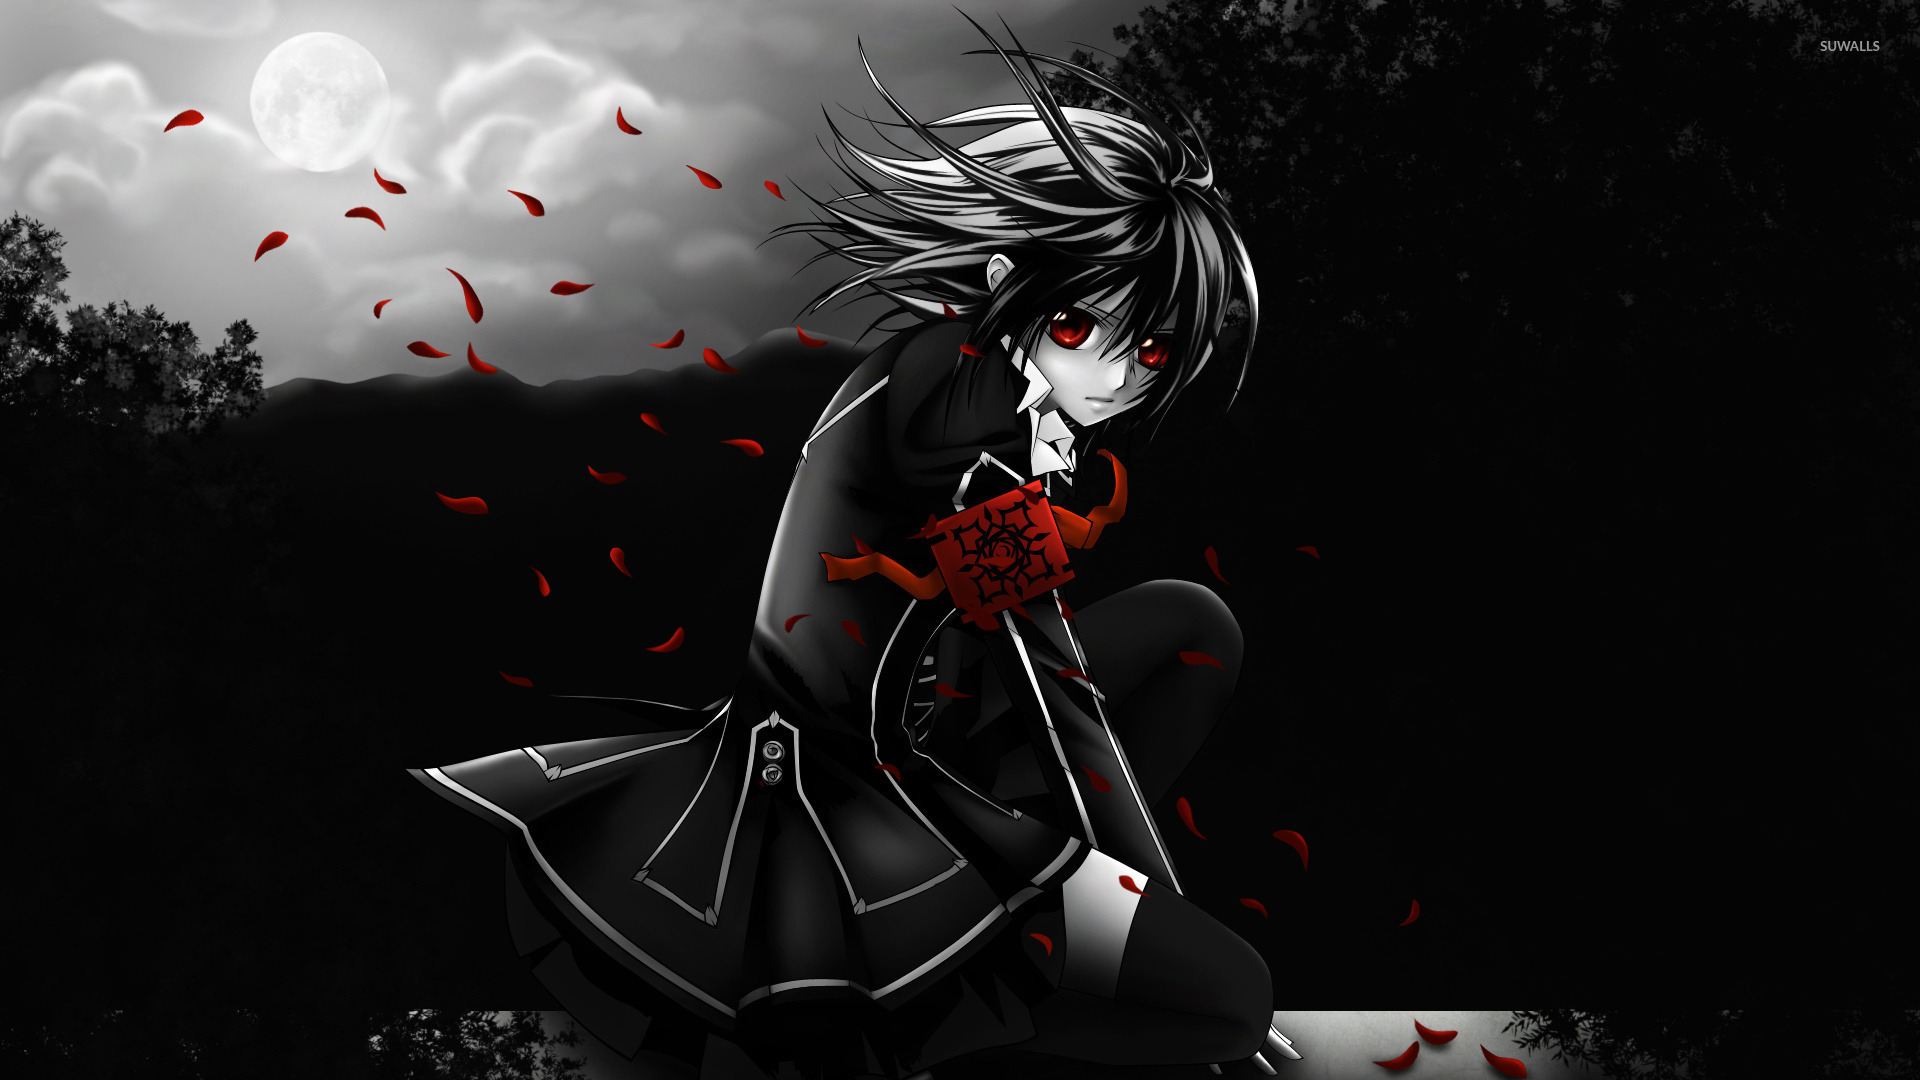 yuki kuran - vampire knight [4] wallpaper - anime wallpapers - #15972